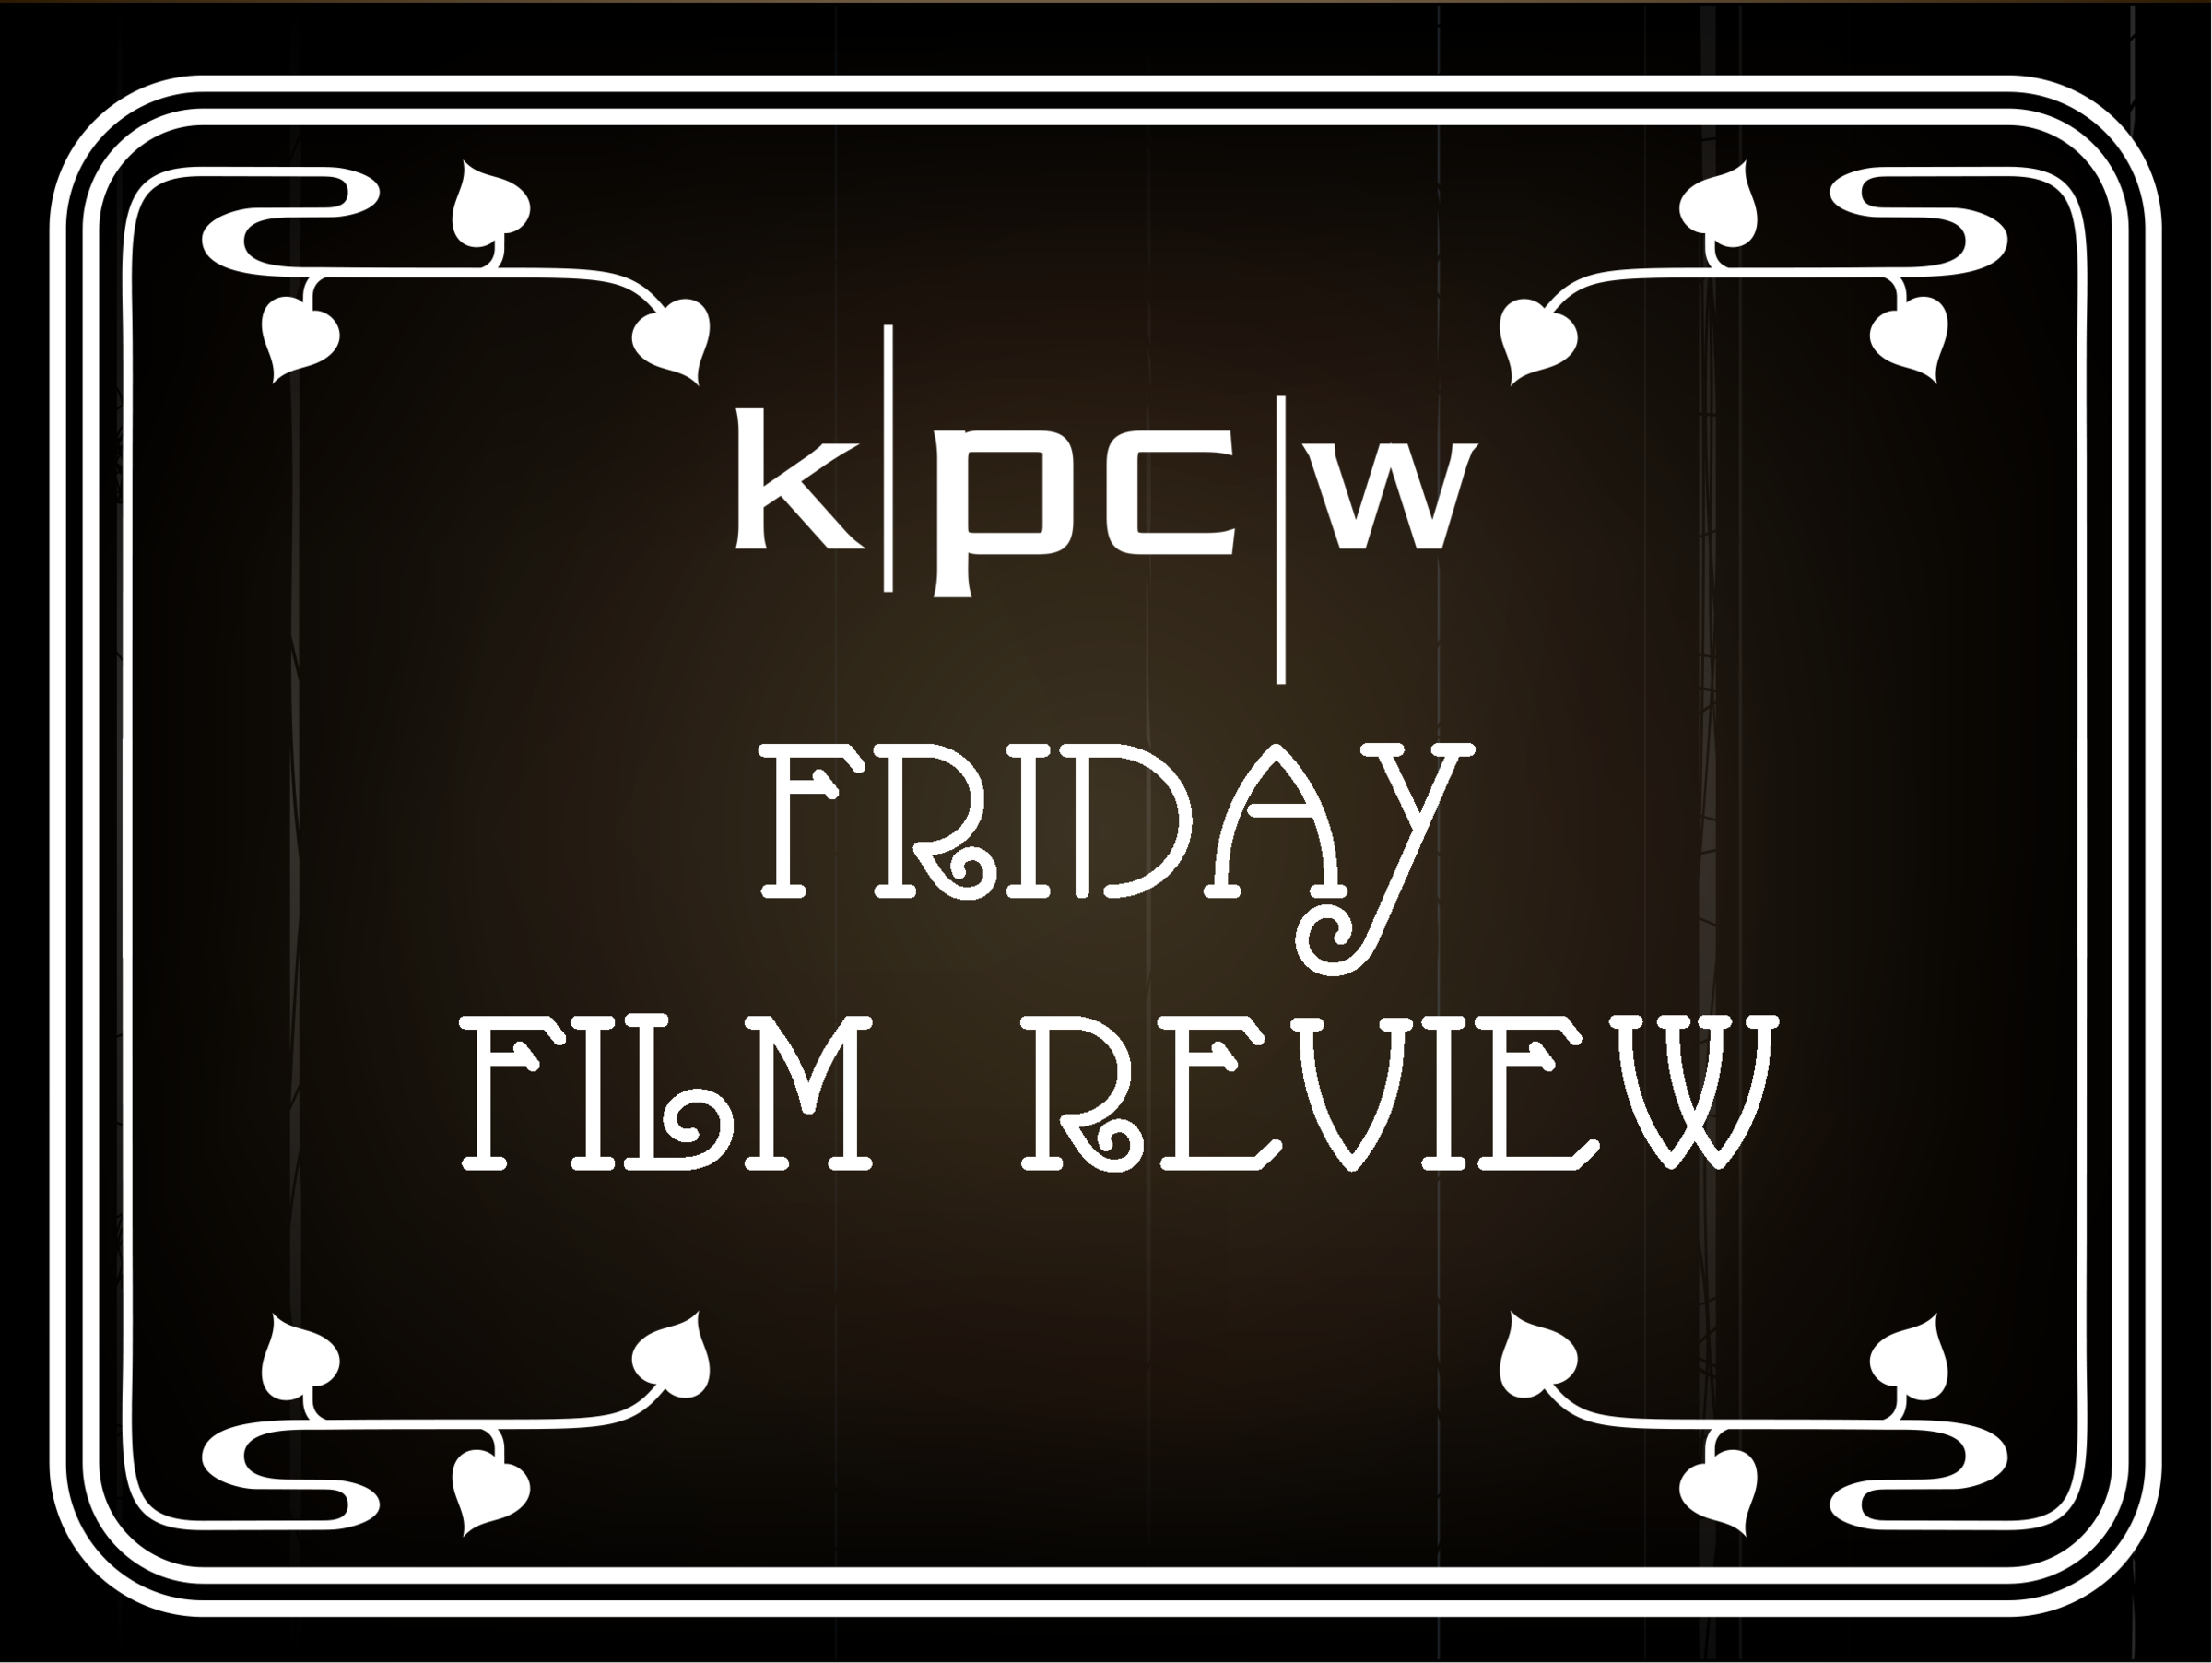 Friday Film Review Escape Room Kpcw